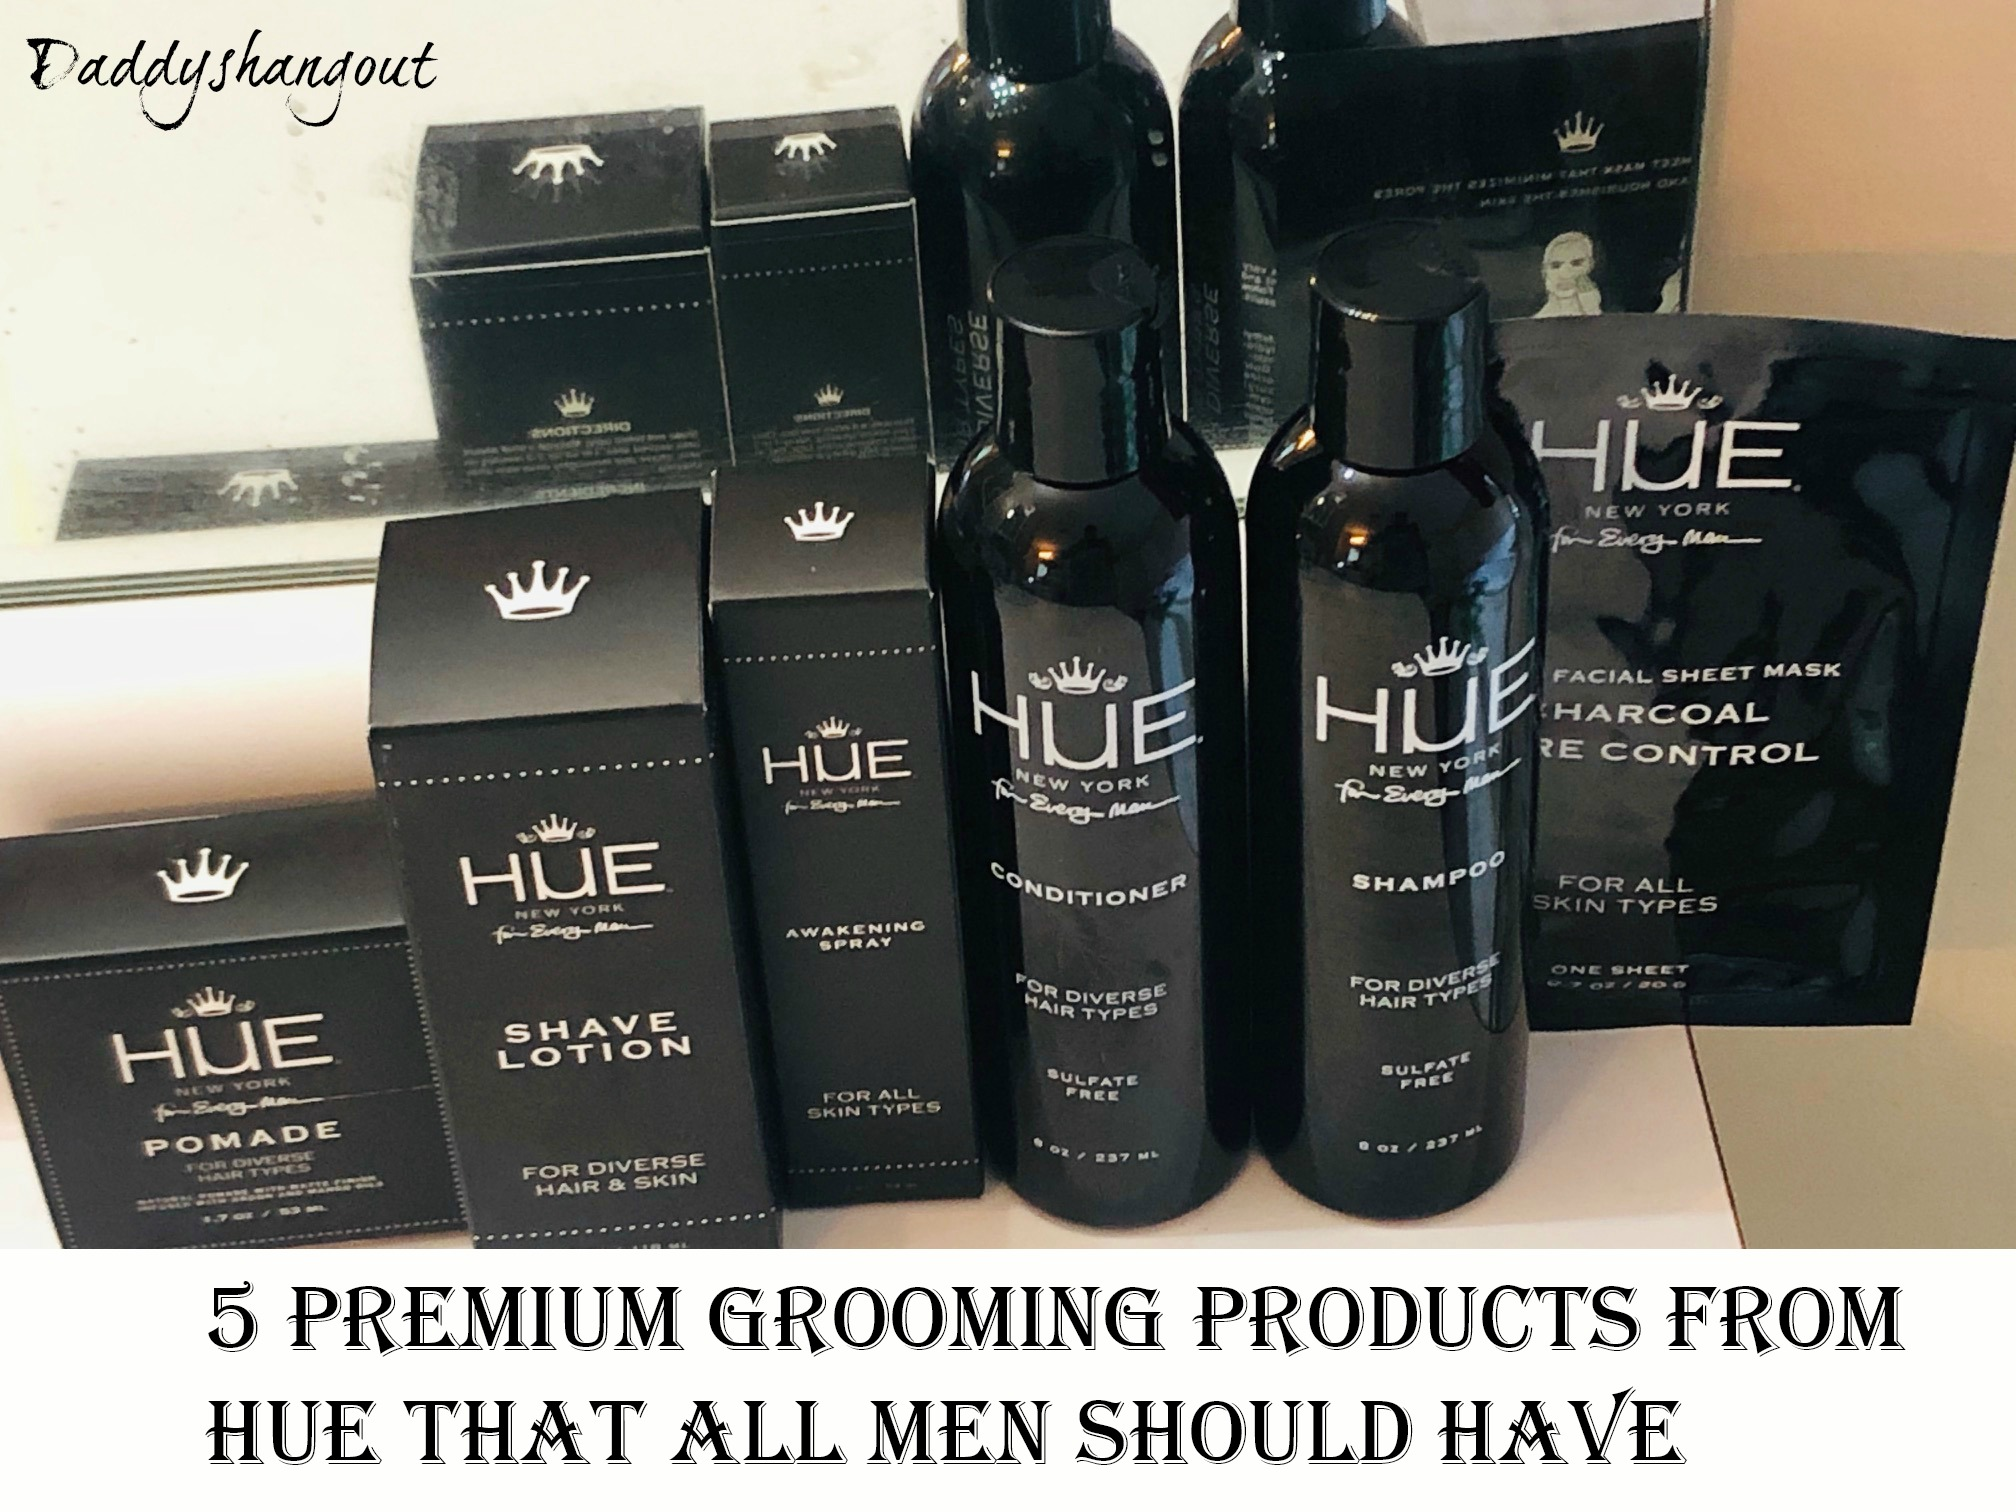 5 Premium Grooming Products from Hue That All Men Should Have